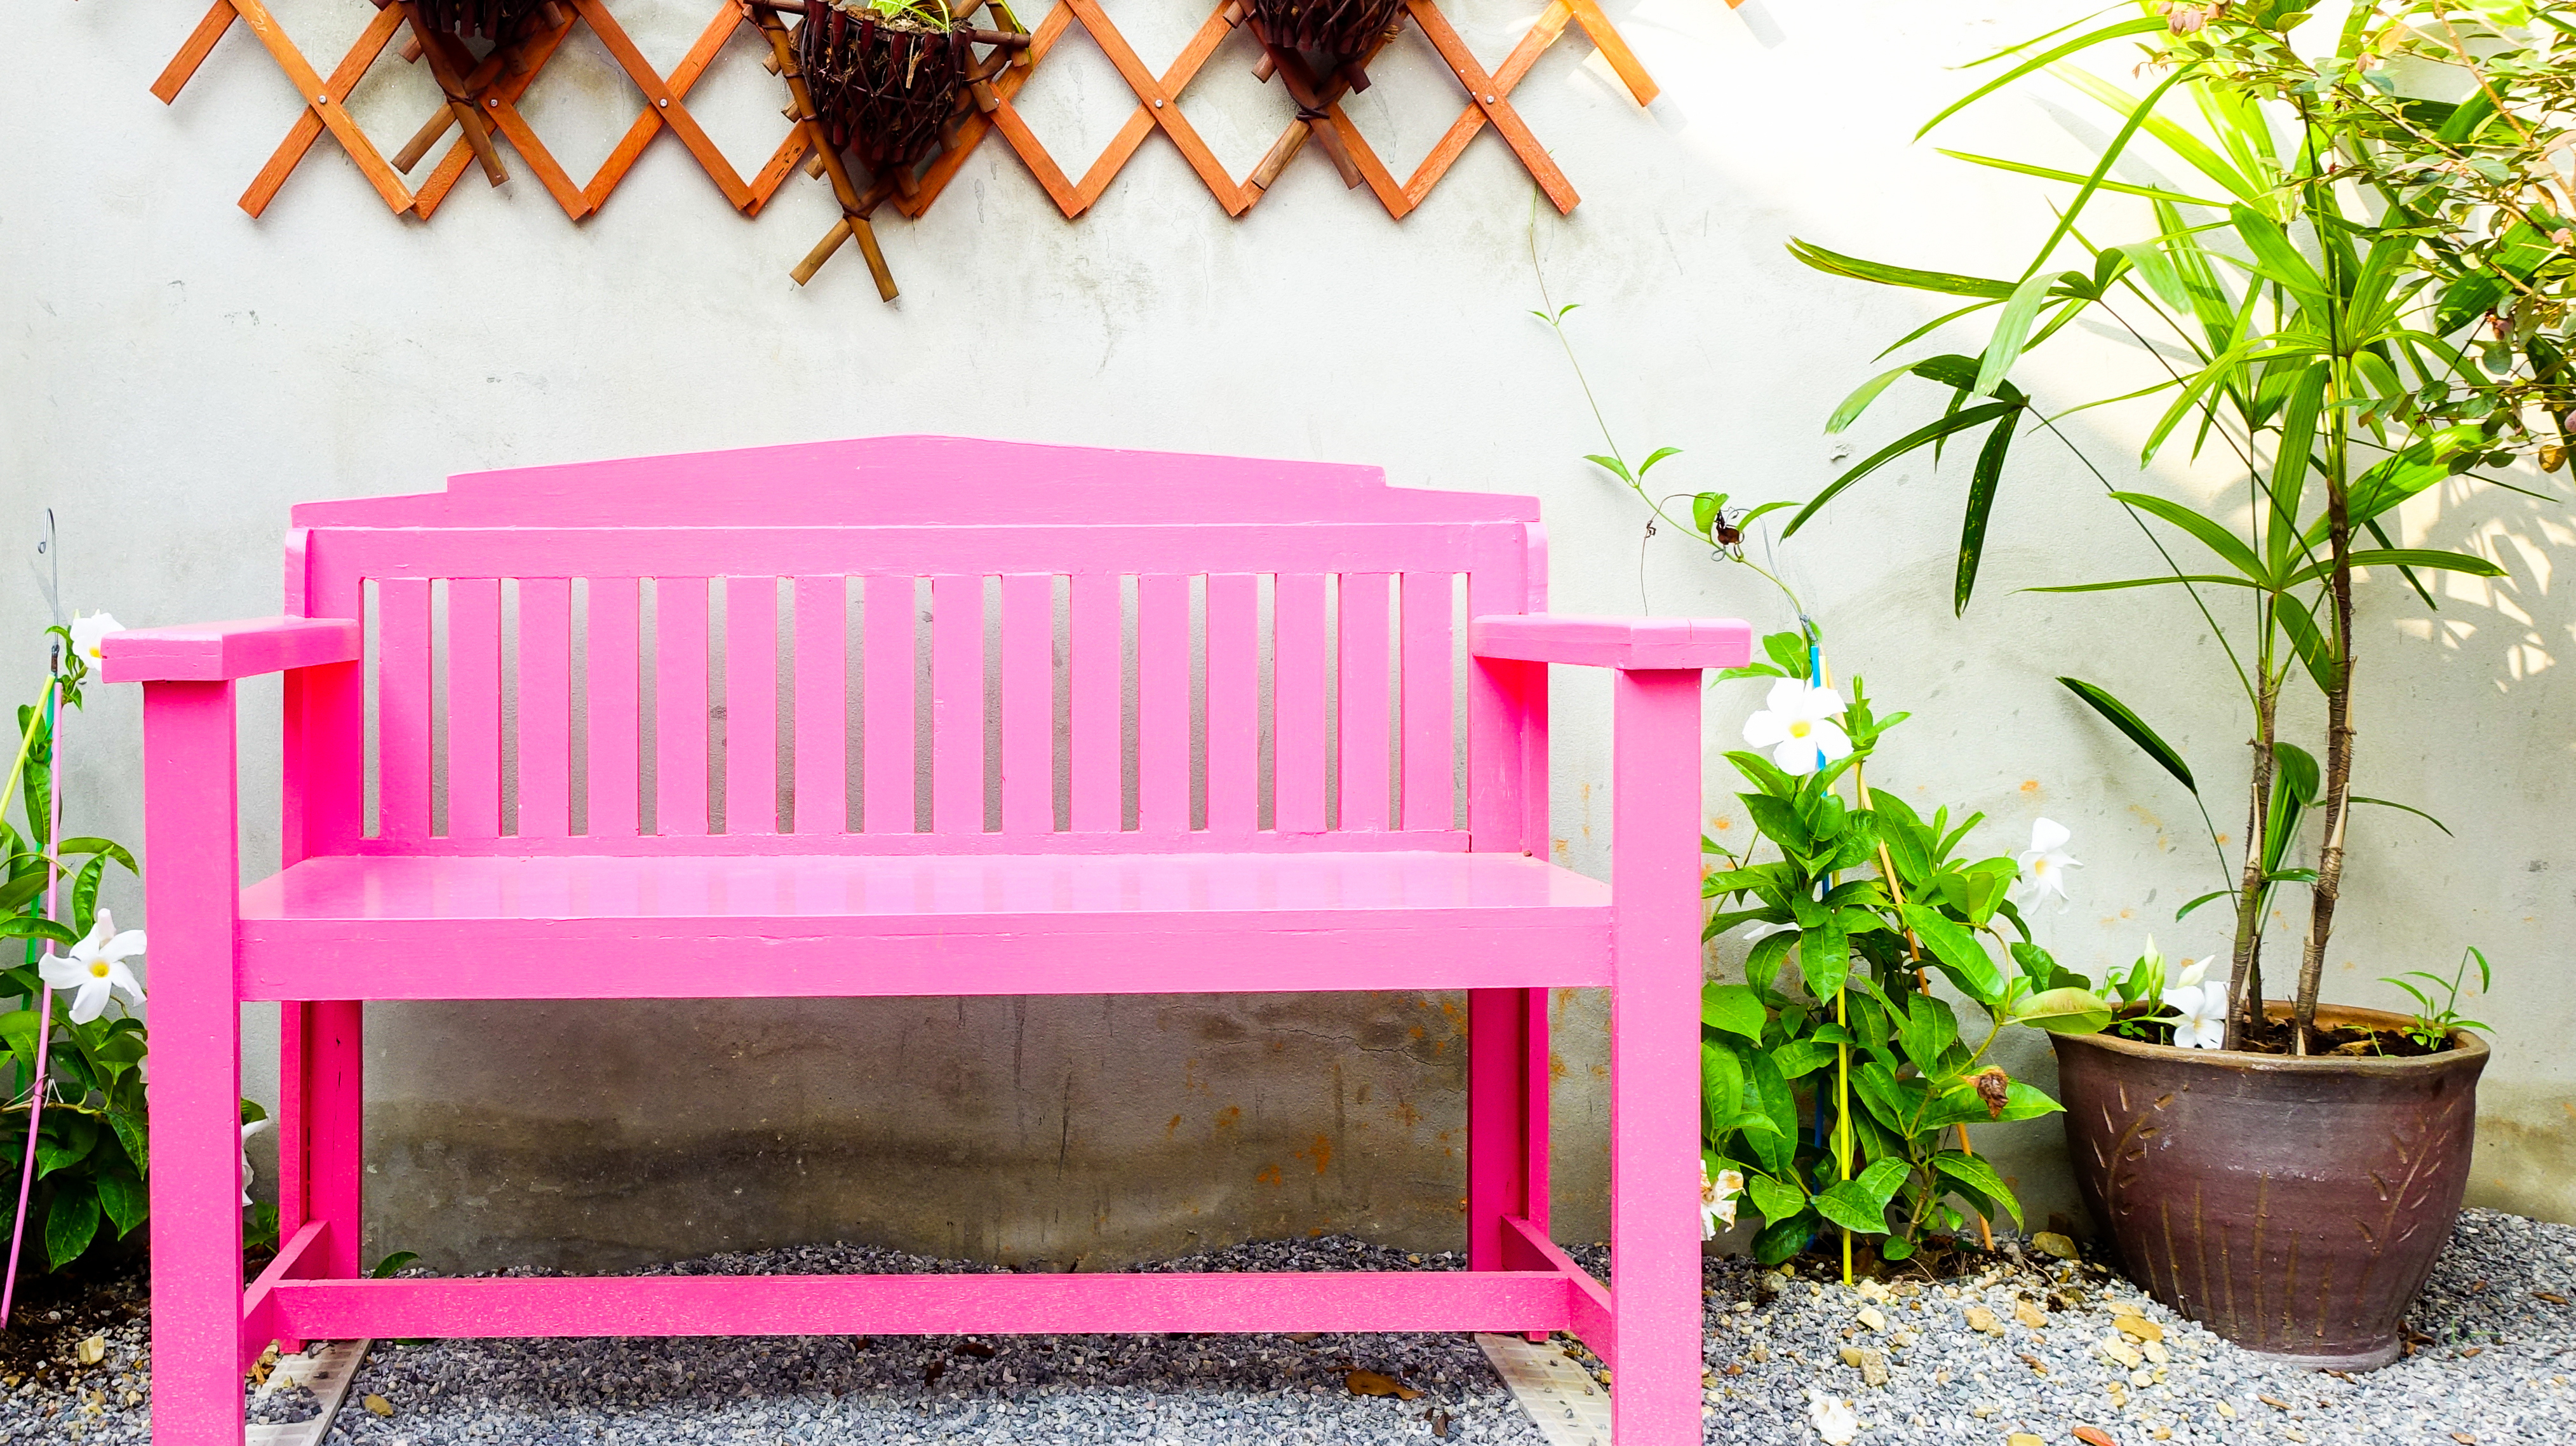 Spray Paint Hacks To Upgrade Your Home For Cheap